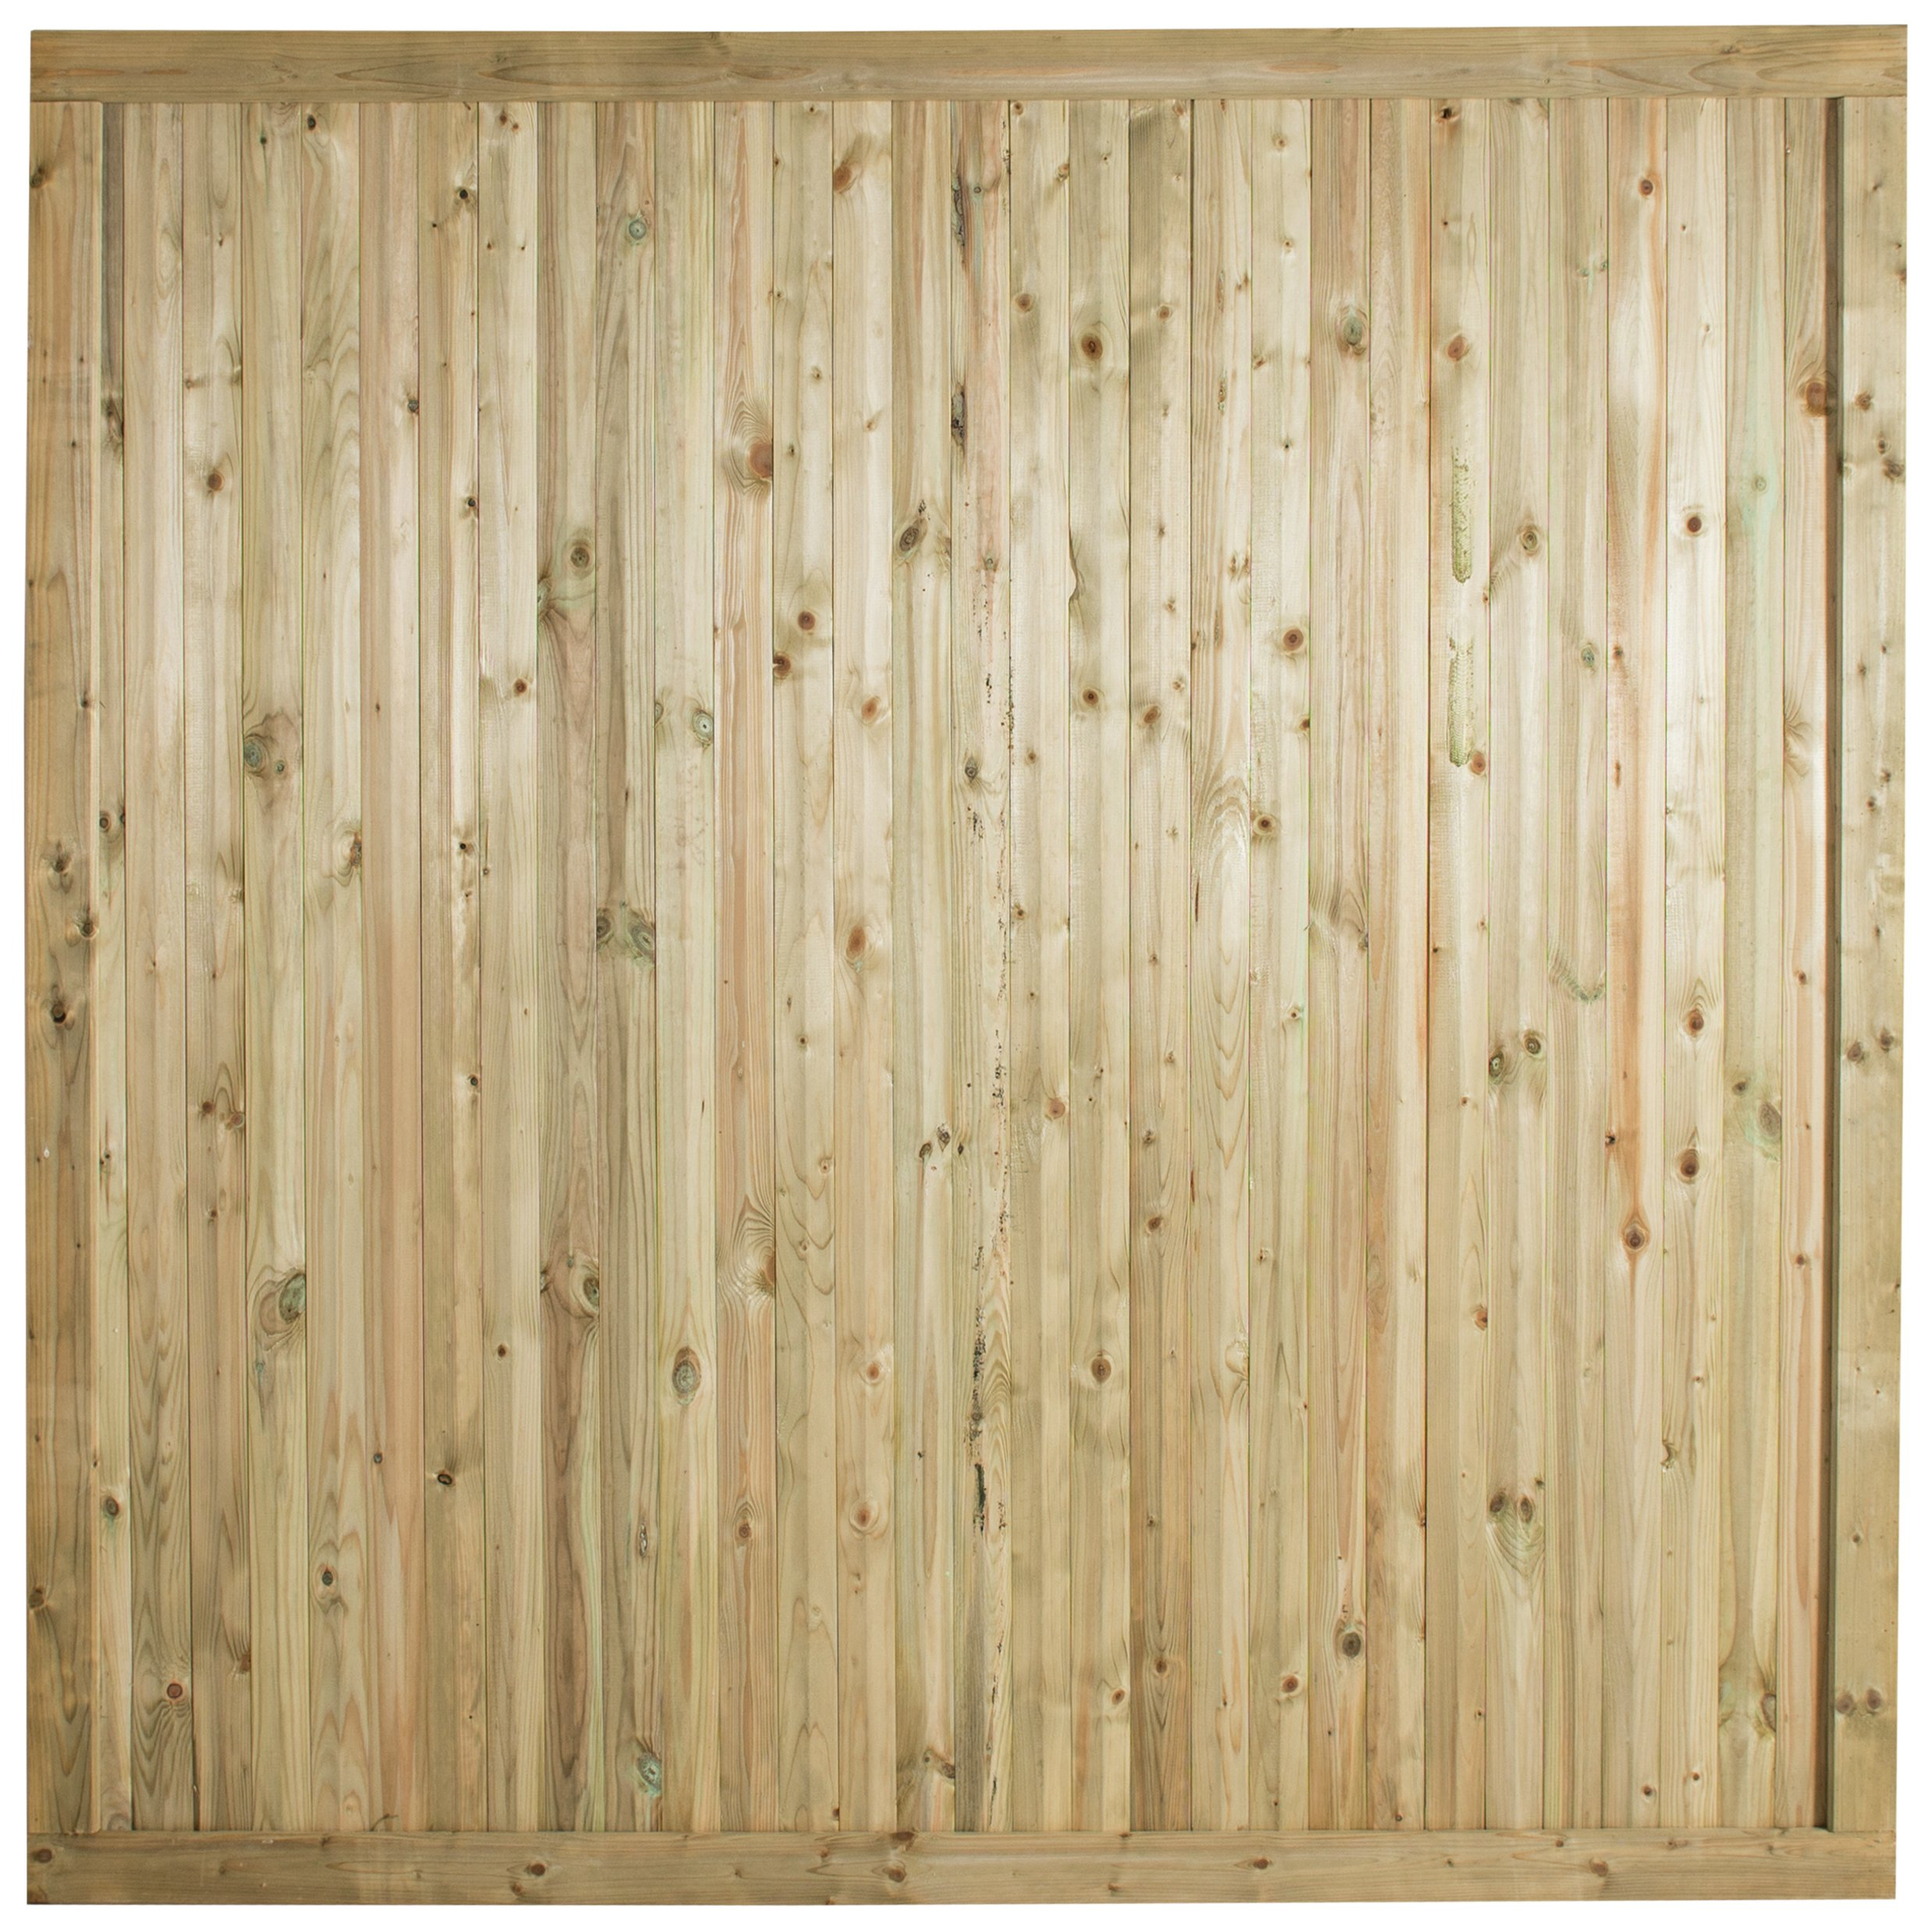 Forest Decibel Noise Reduction 6ft Fence Panel - Pack of 3